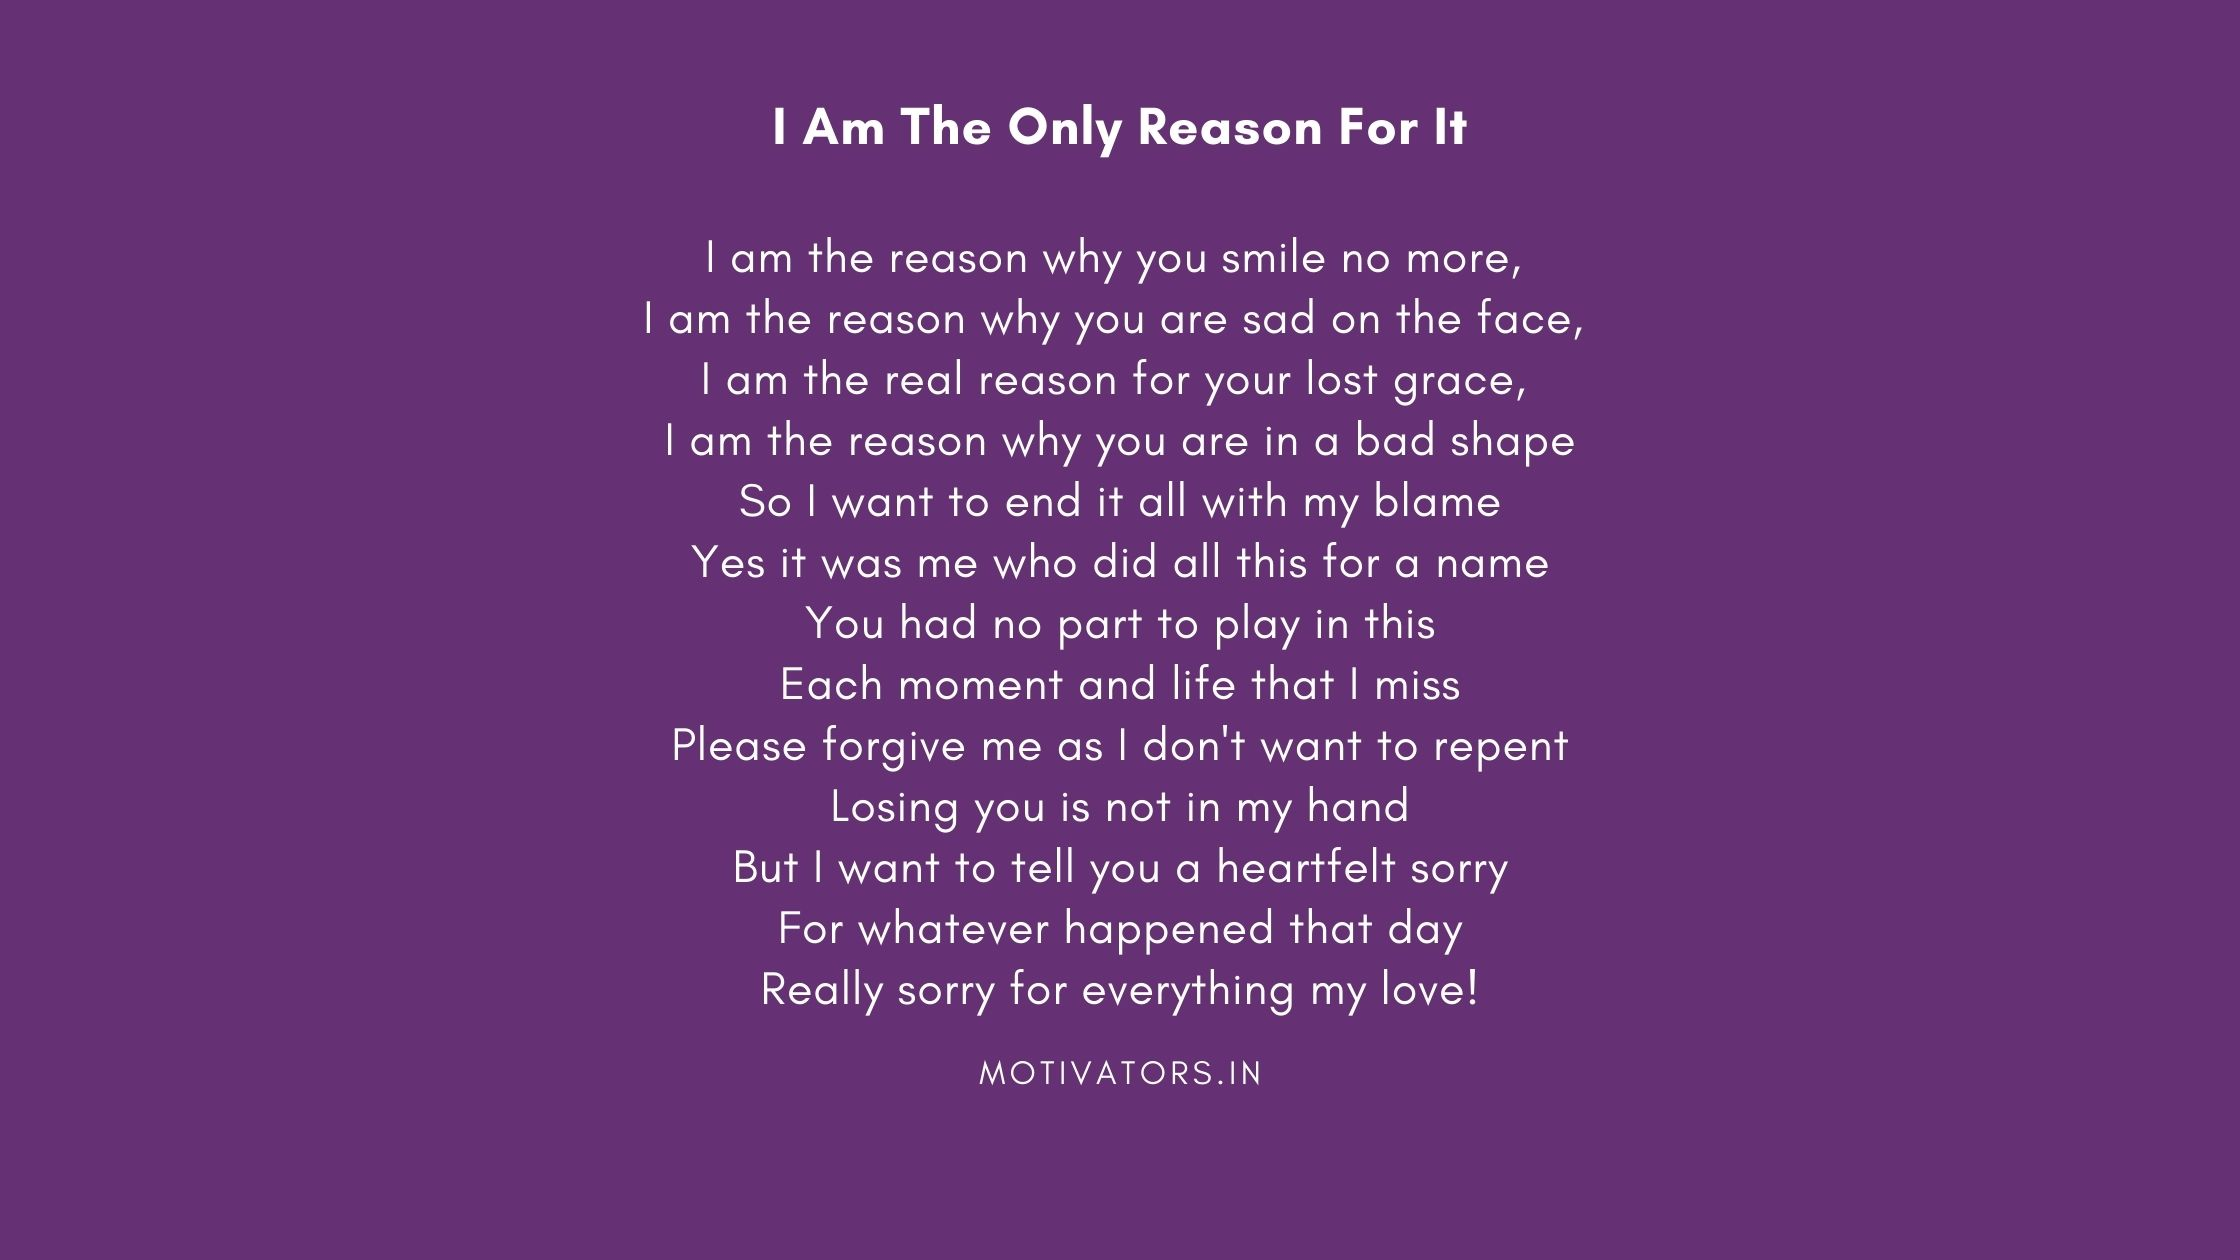 I Am The Only Reason For It